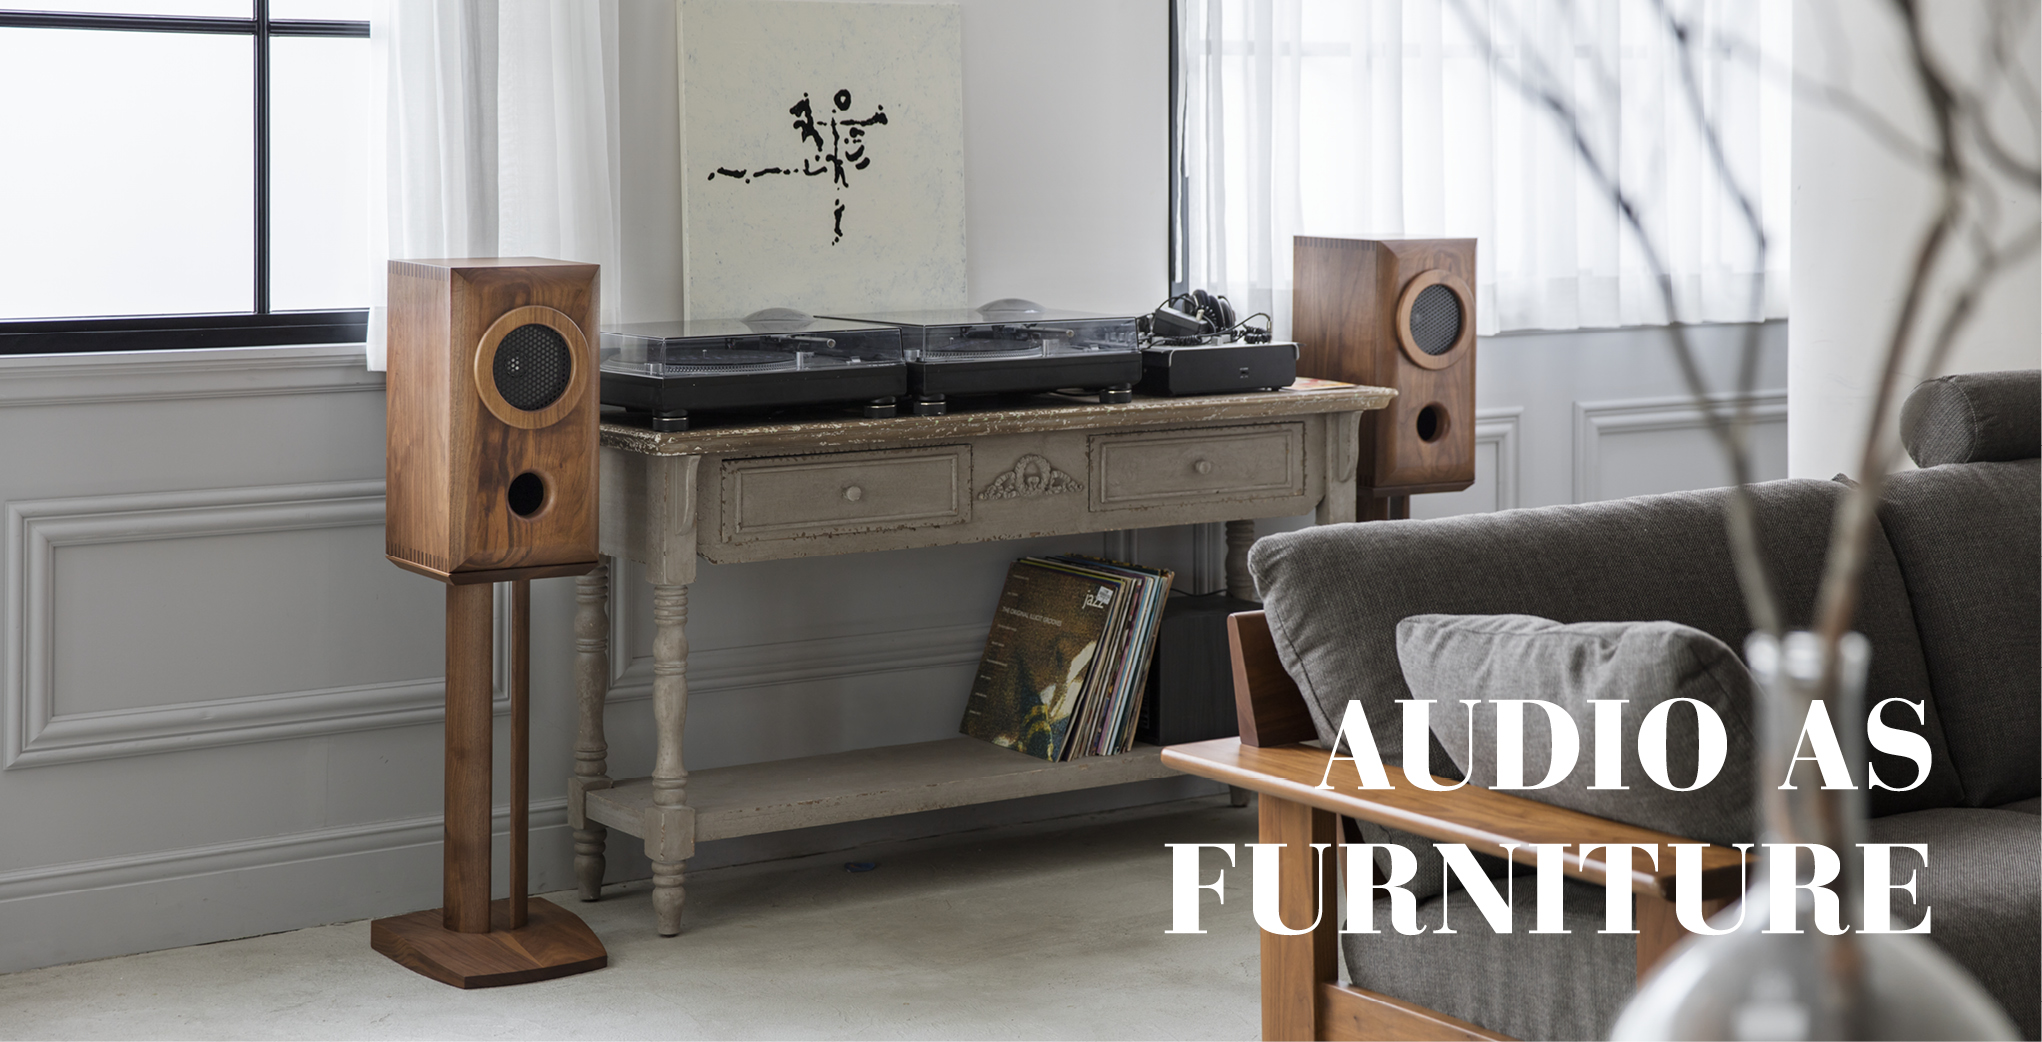 AUDIO AS FURNITURE